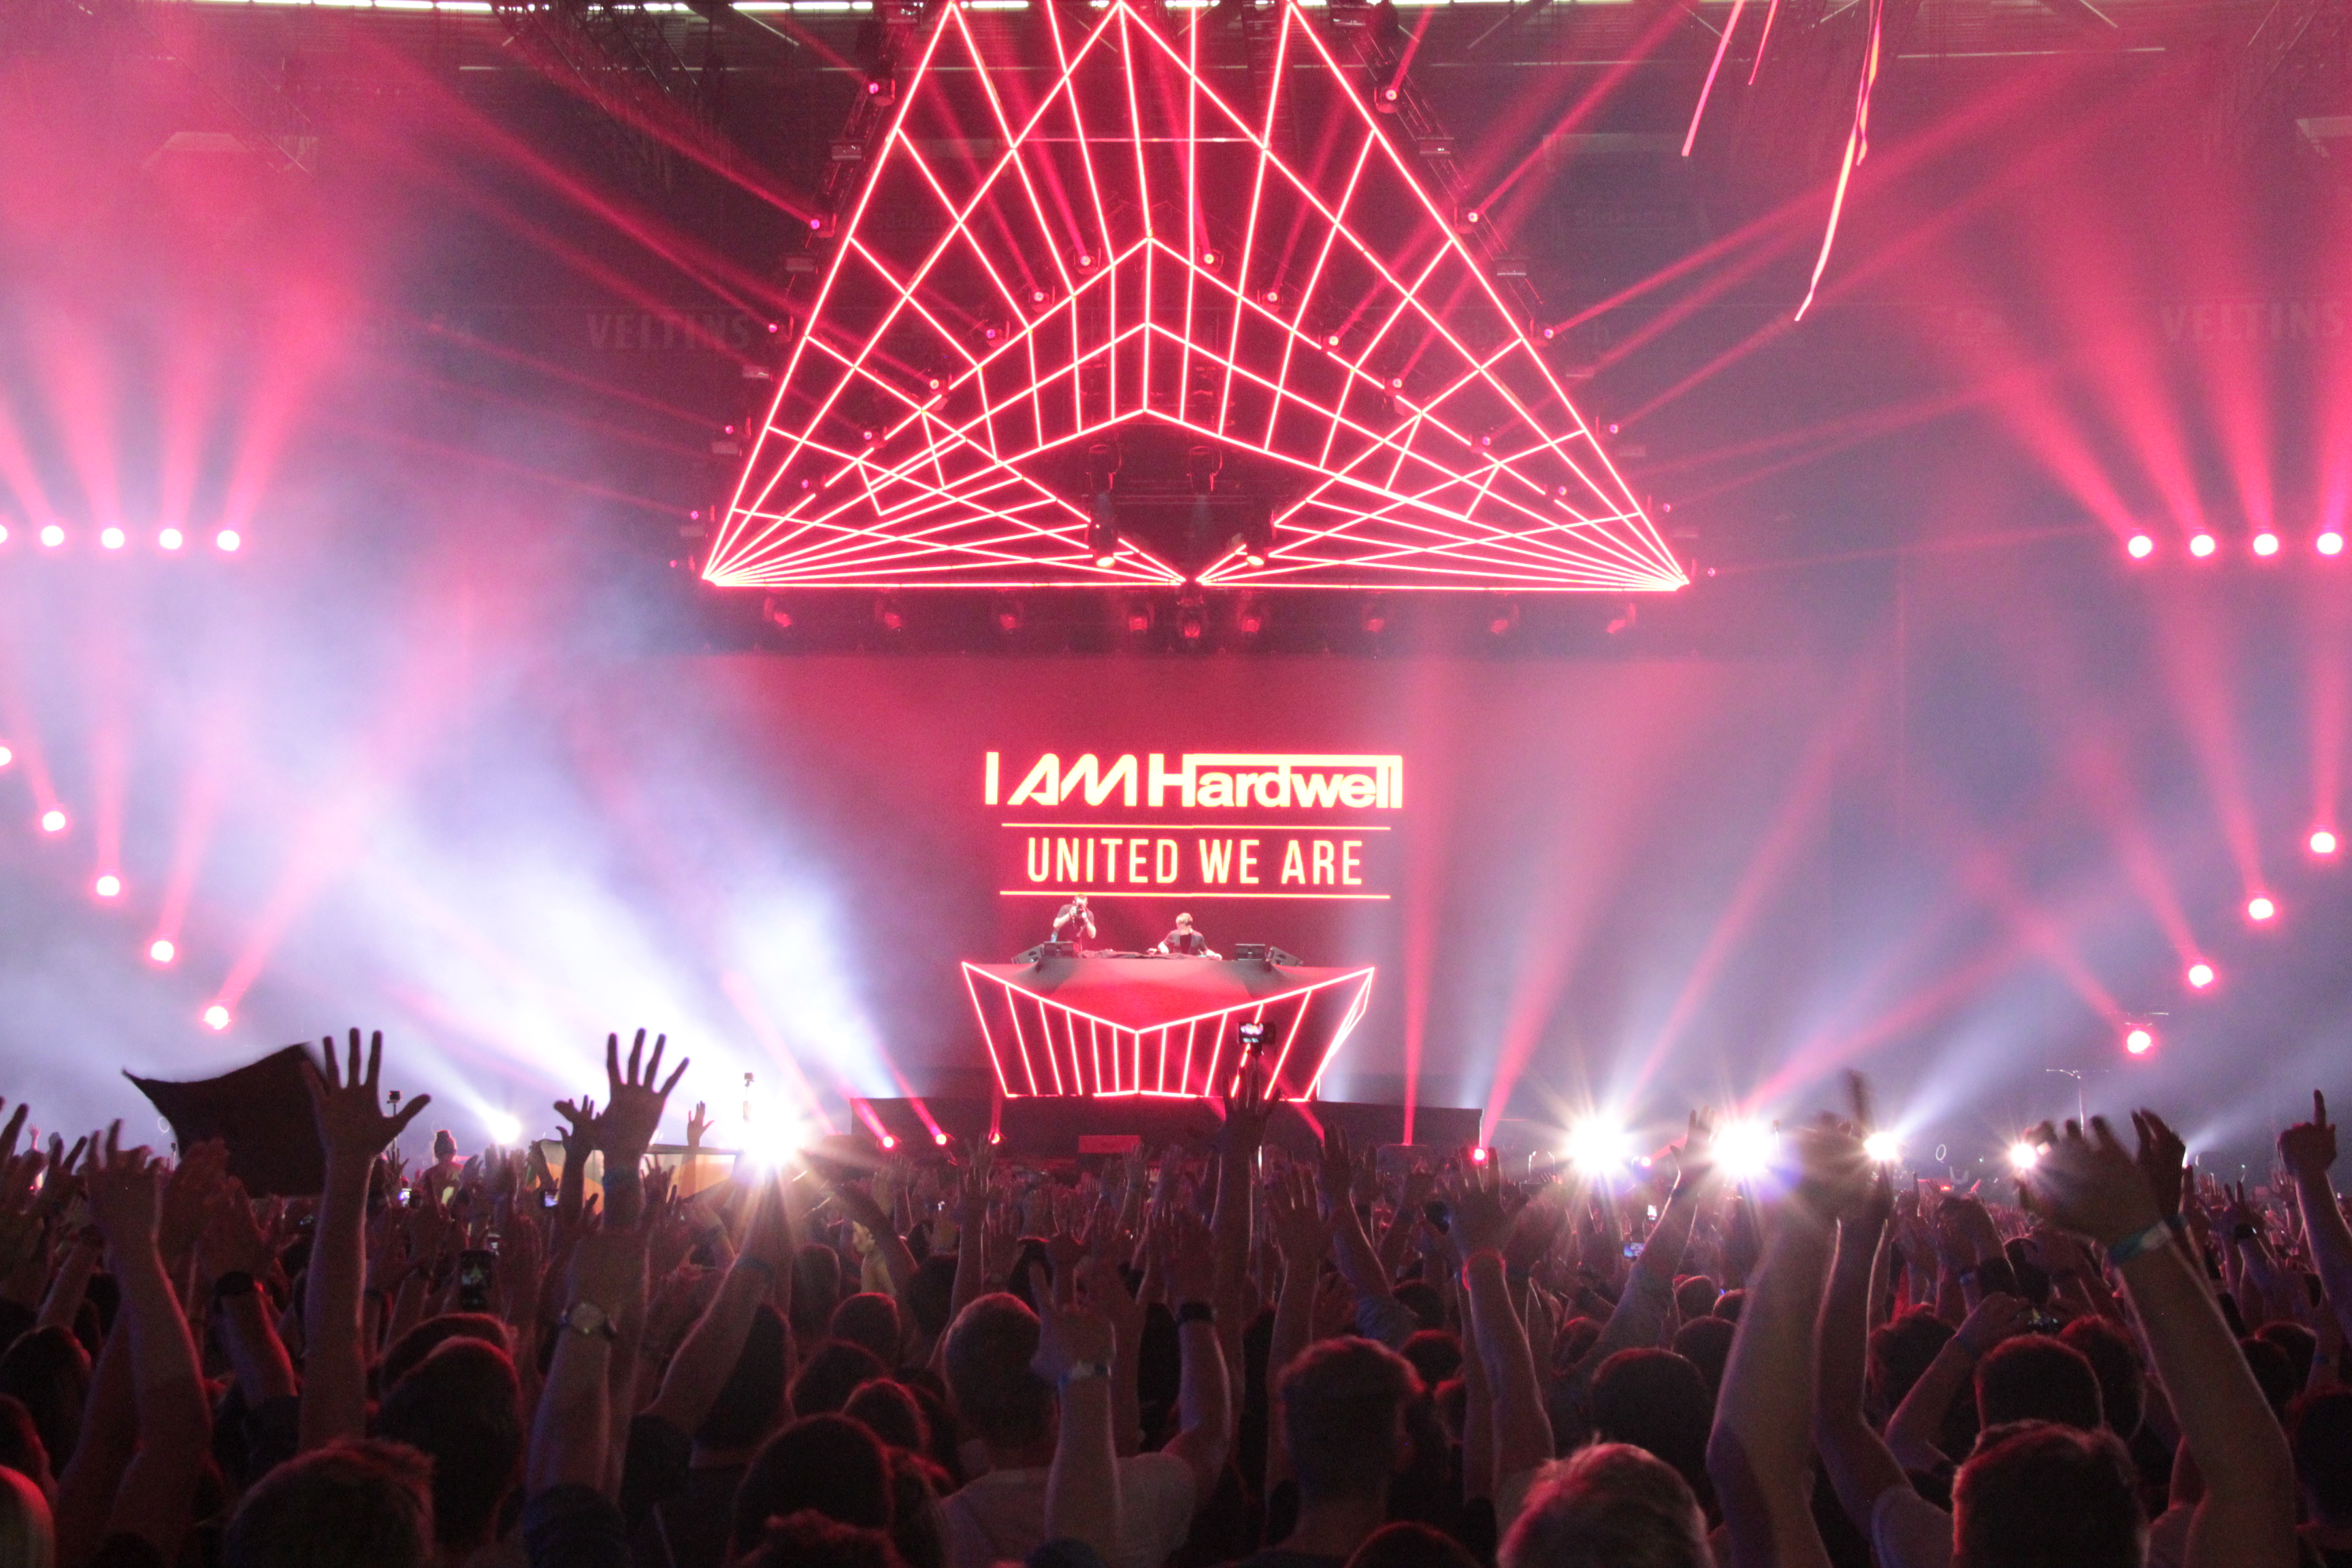 Fotos: Hardwell United We Are @ Veltins Arena Gelsenkirchen